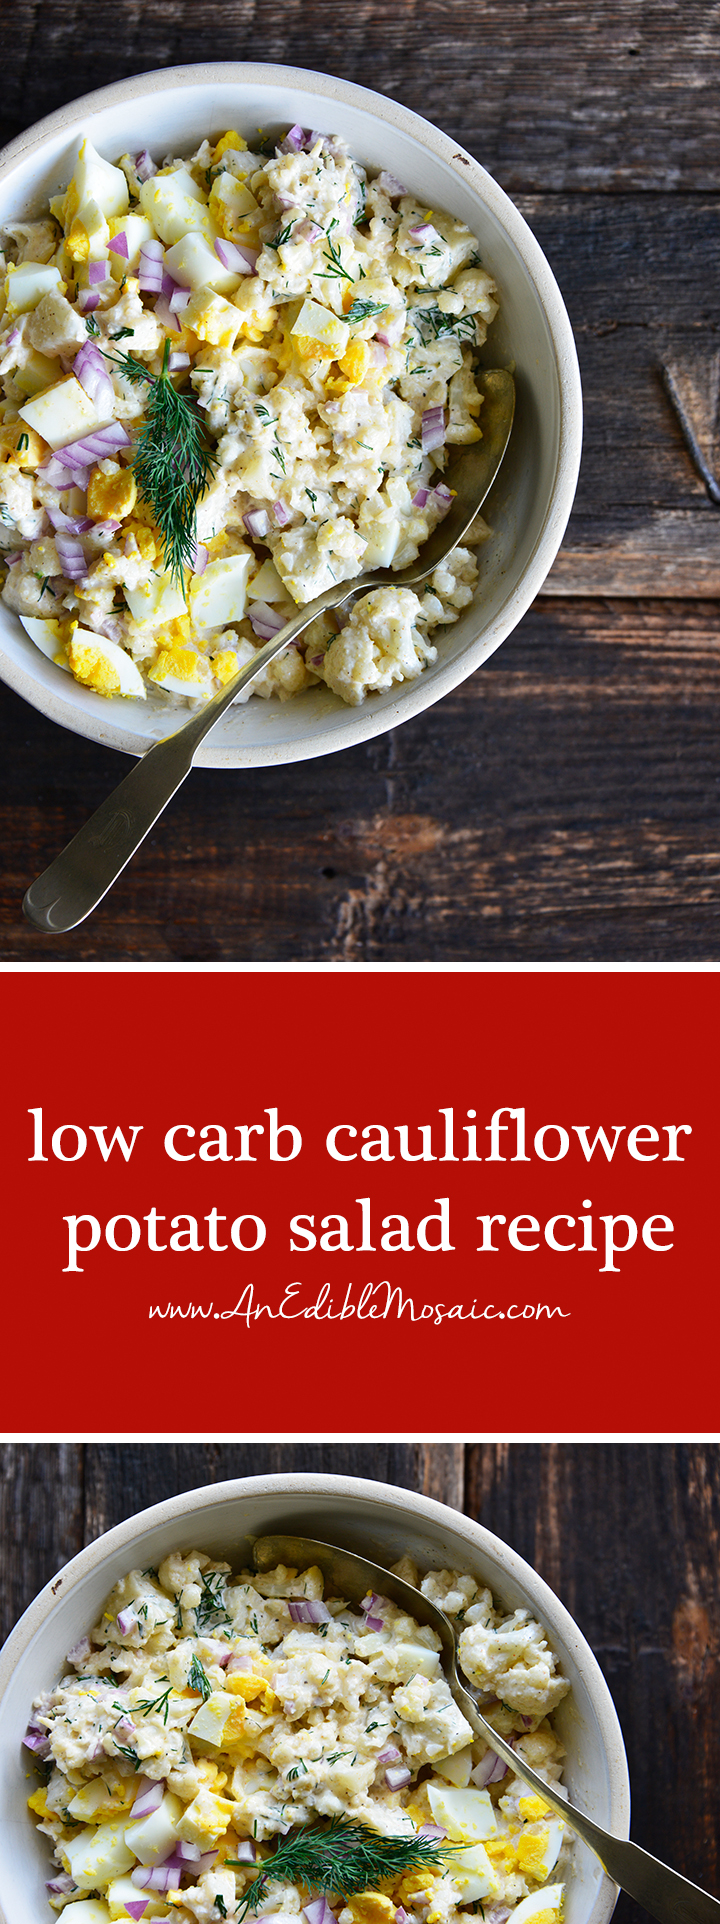 Low Carb Cauliflower Potato Salad Recipe Pin